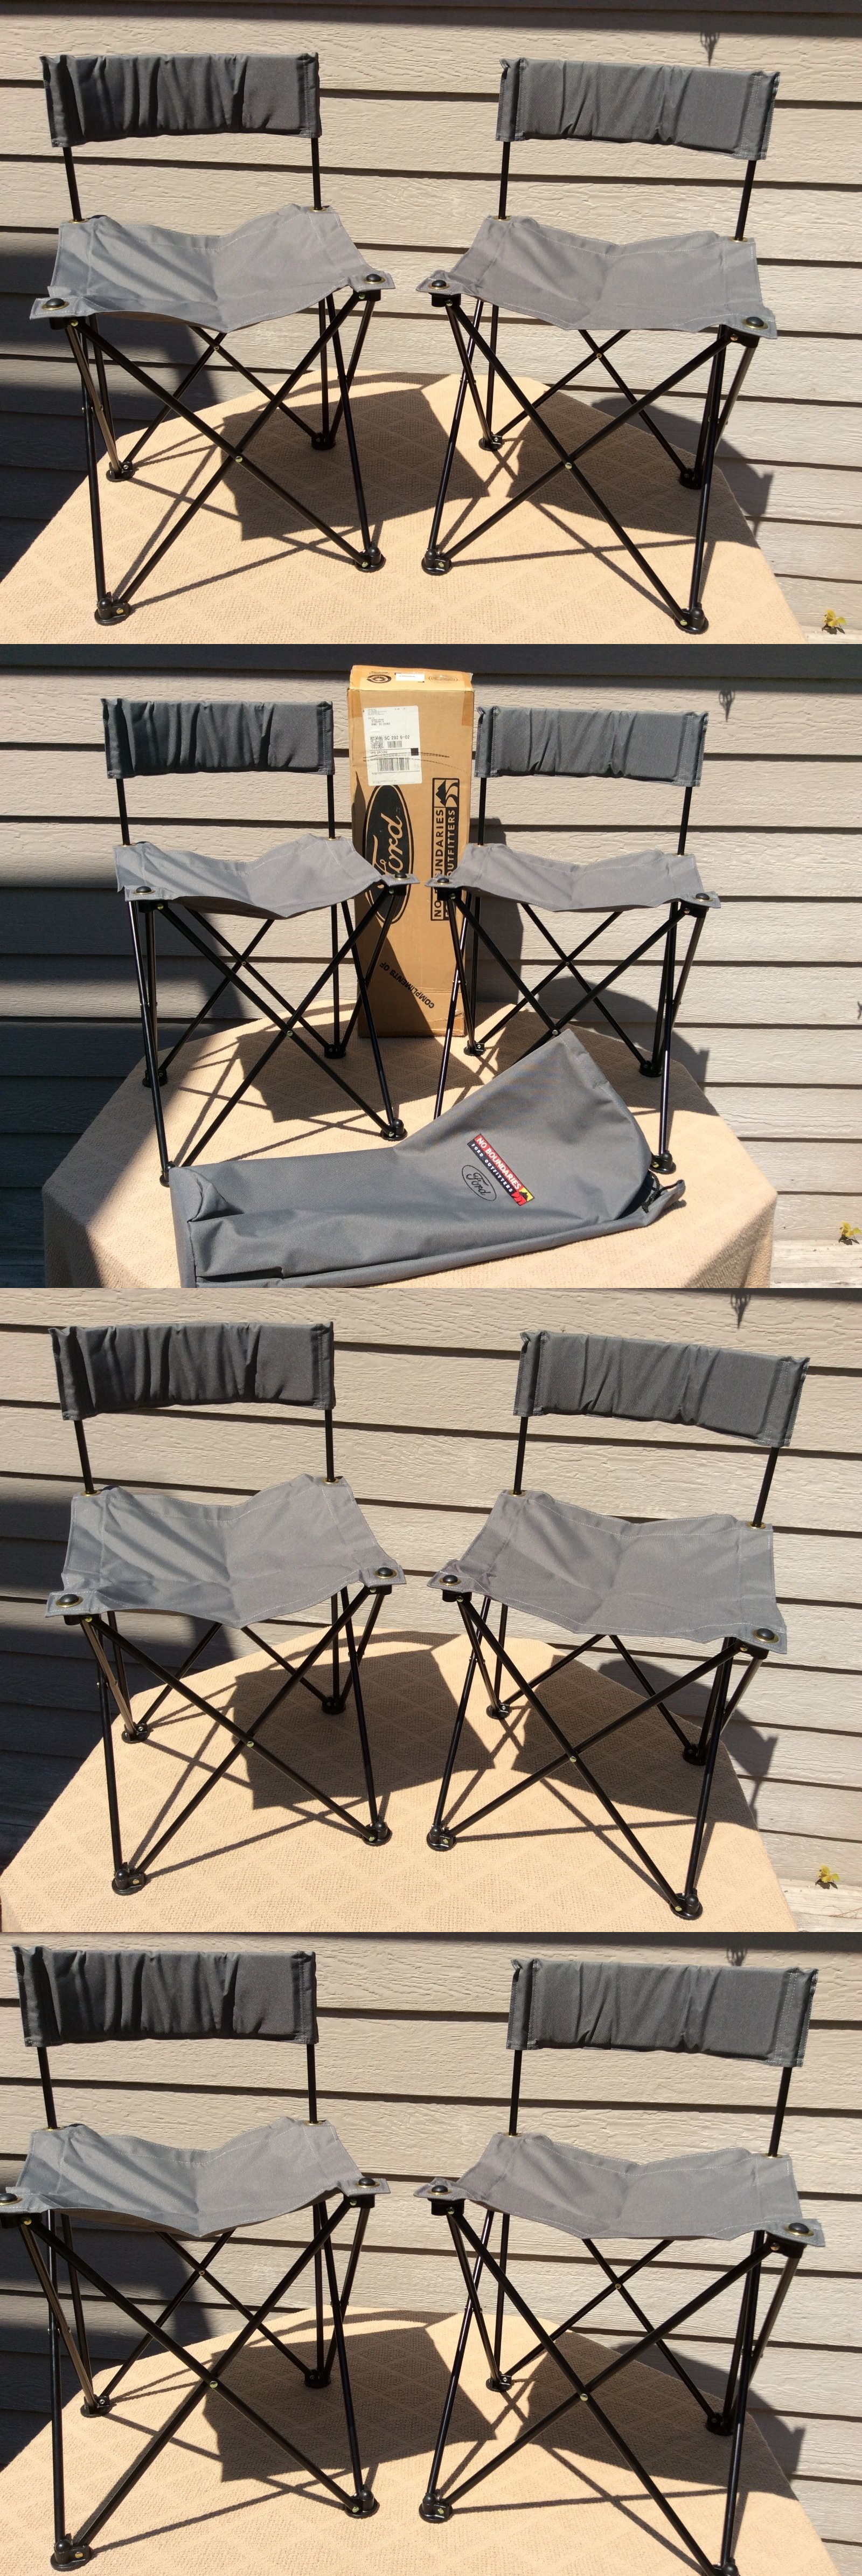 Camping Furniture Ford Outfitters Explorer 2 Folding Chairs